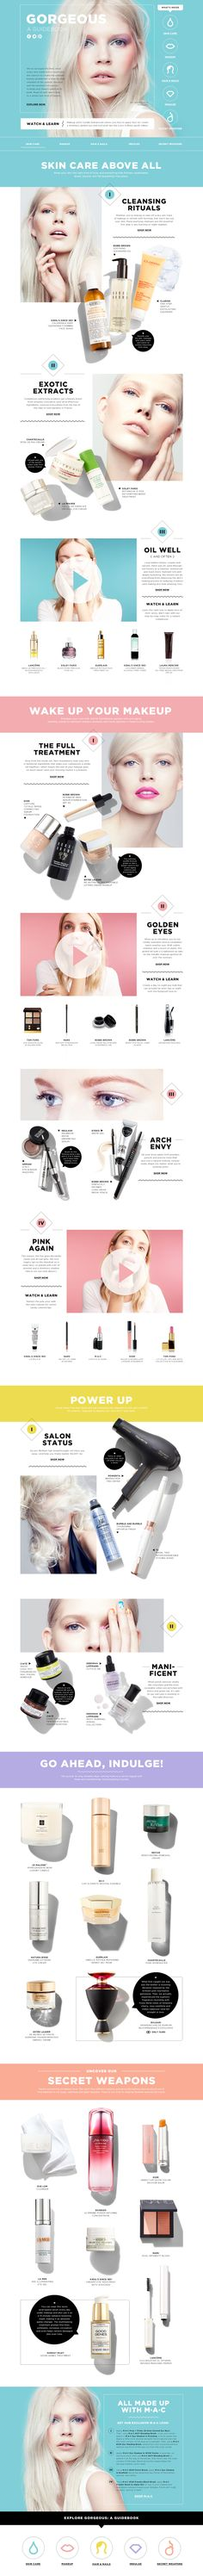 S15_BEAUTY_LOOKBOOK_DG_X.jpg